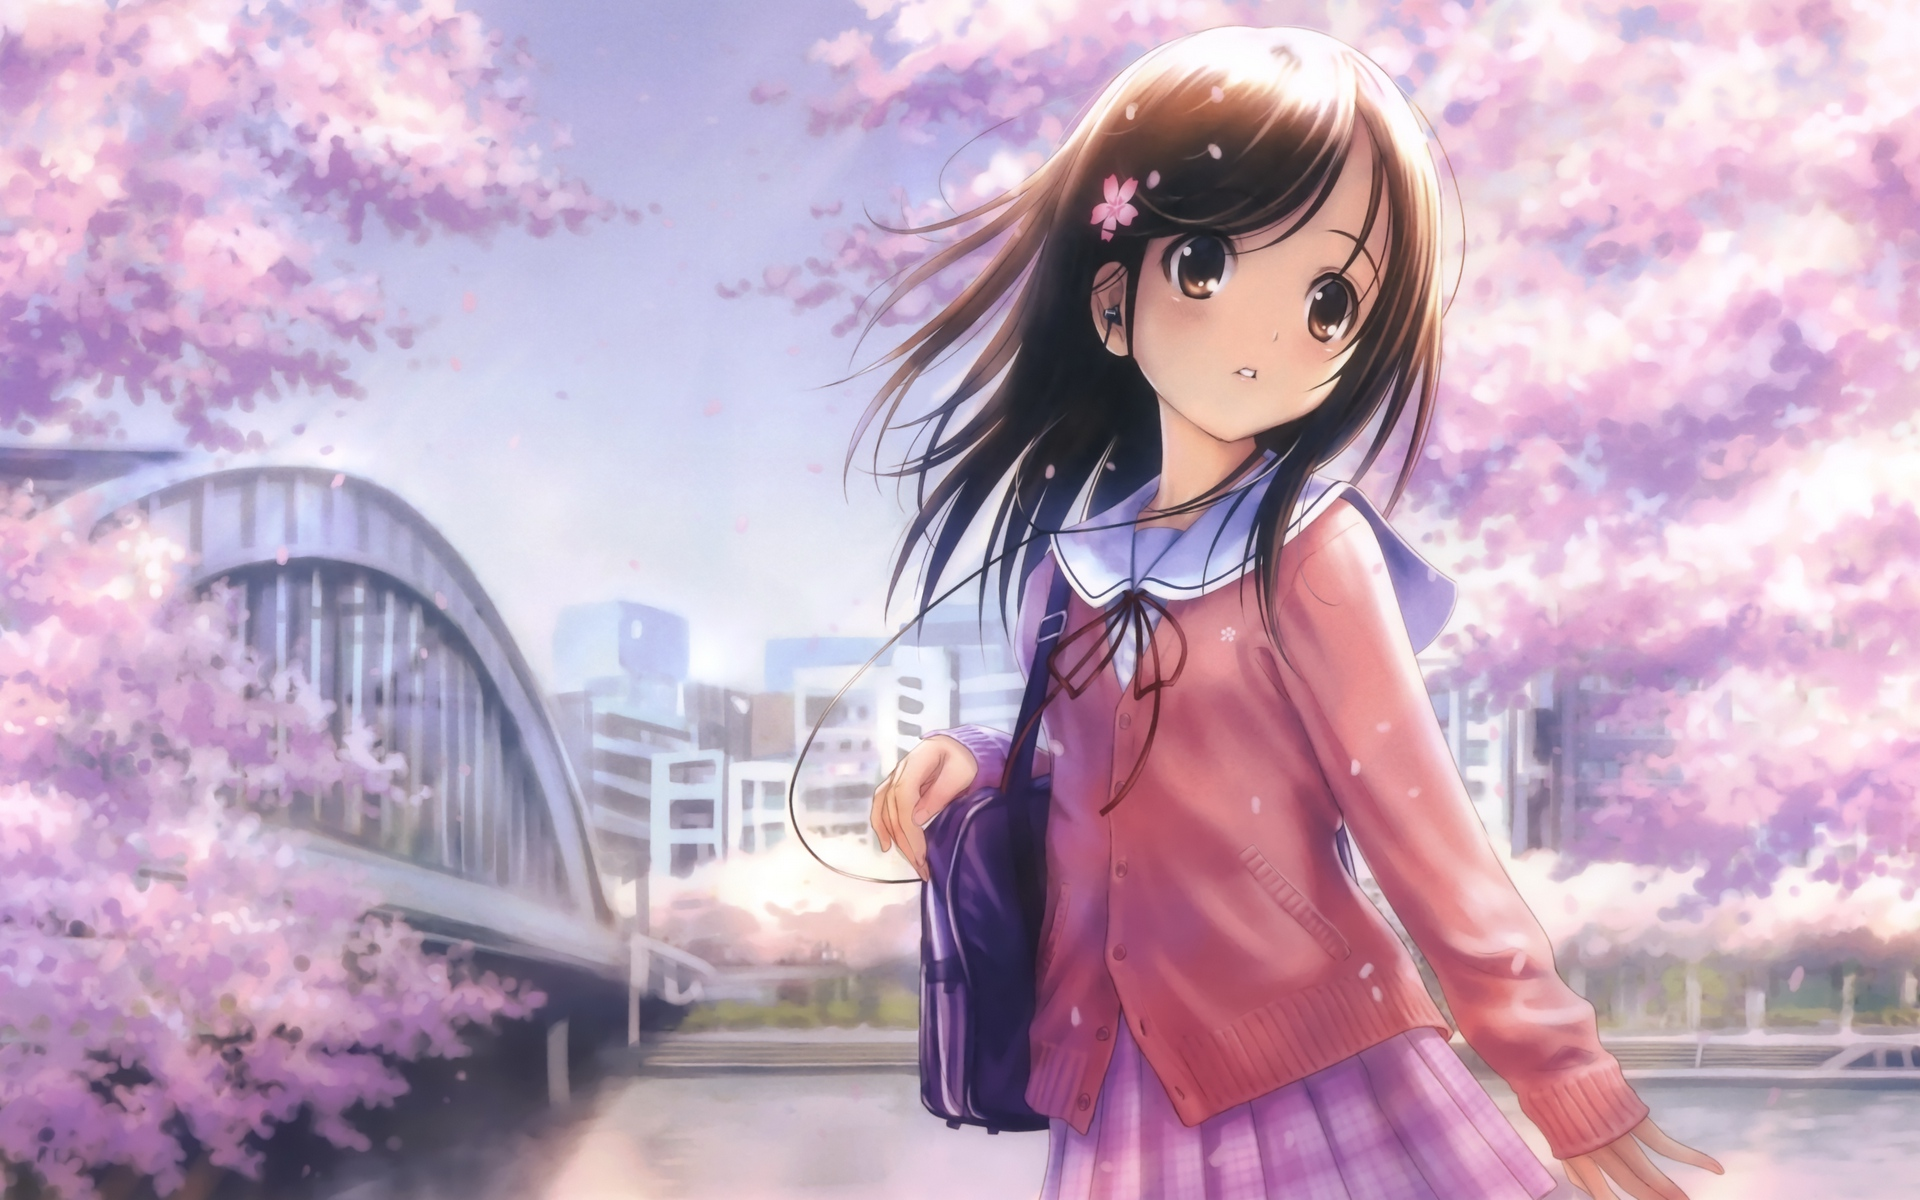 Cute Anime Girl Wallpaper Wallpaper WallpaperLepi 1920x1200